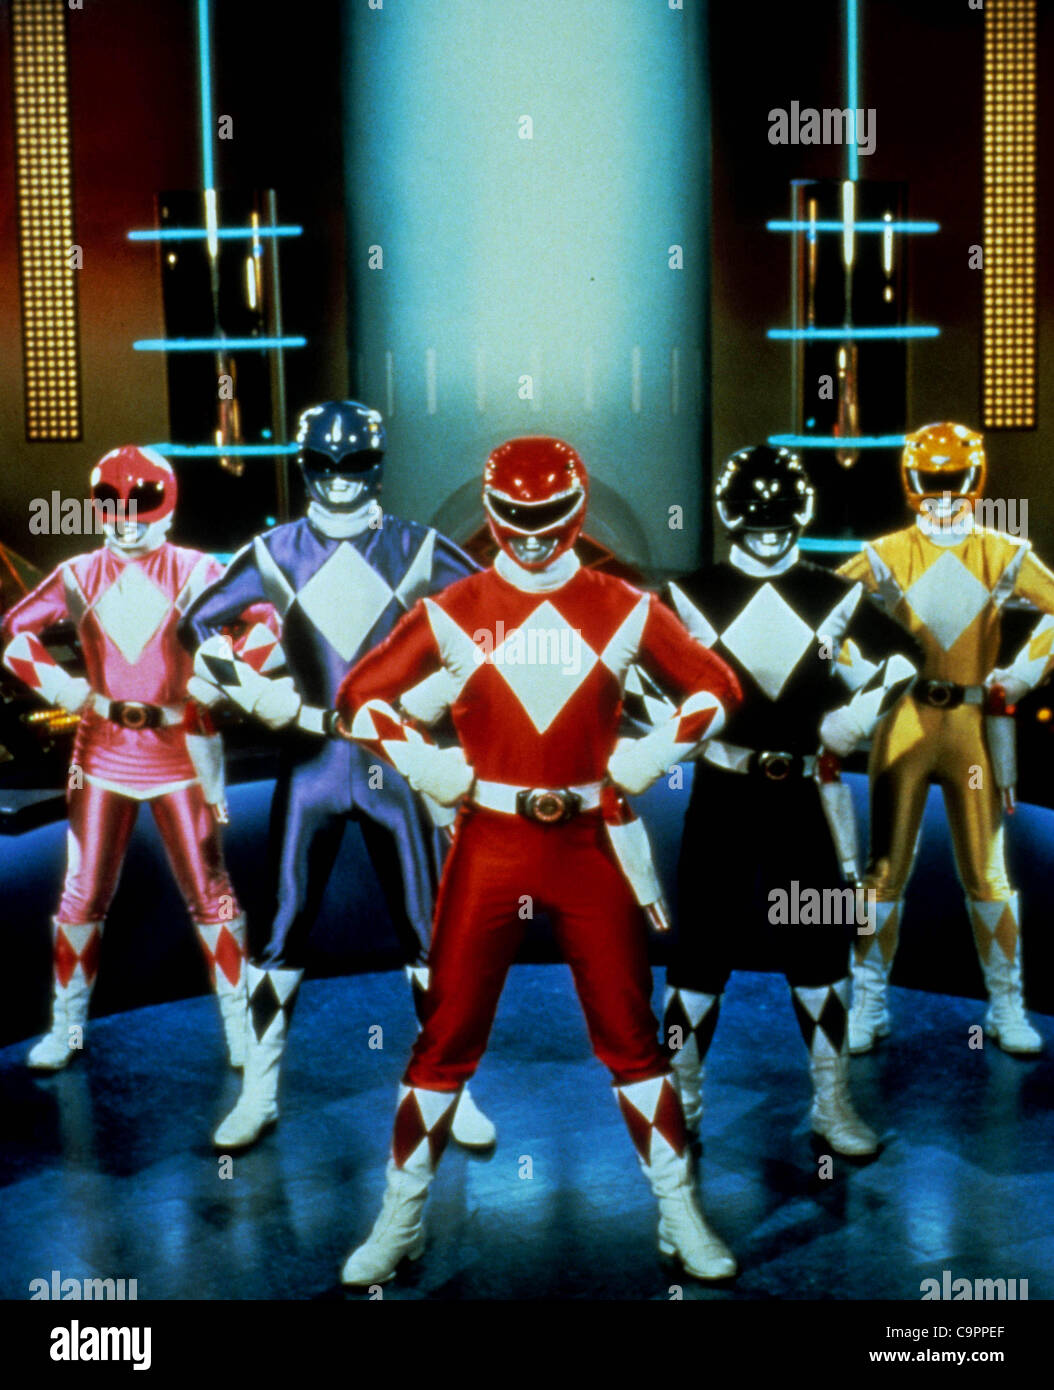 Exact Date Unknown.A11350ADH.MIGHTY MORPHIN' POWER RANGERS. 01/01/1995(Credit Image: © Alan Derek - Stock Image